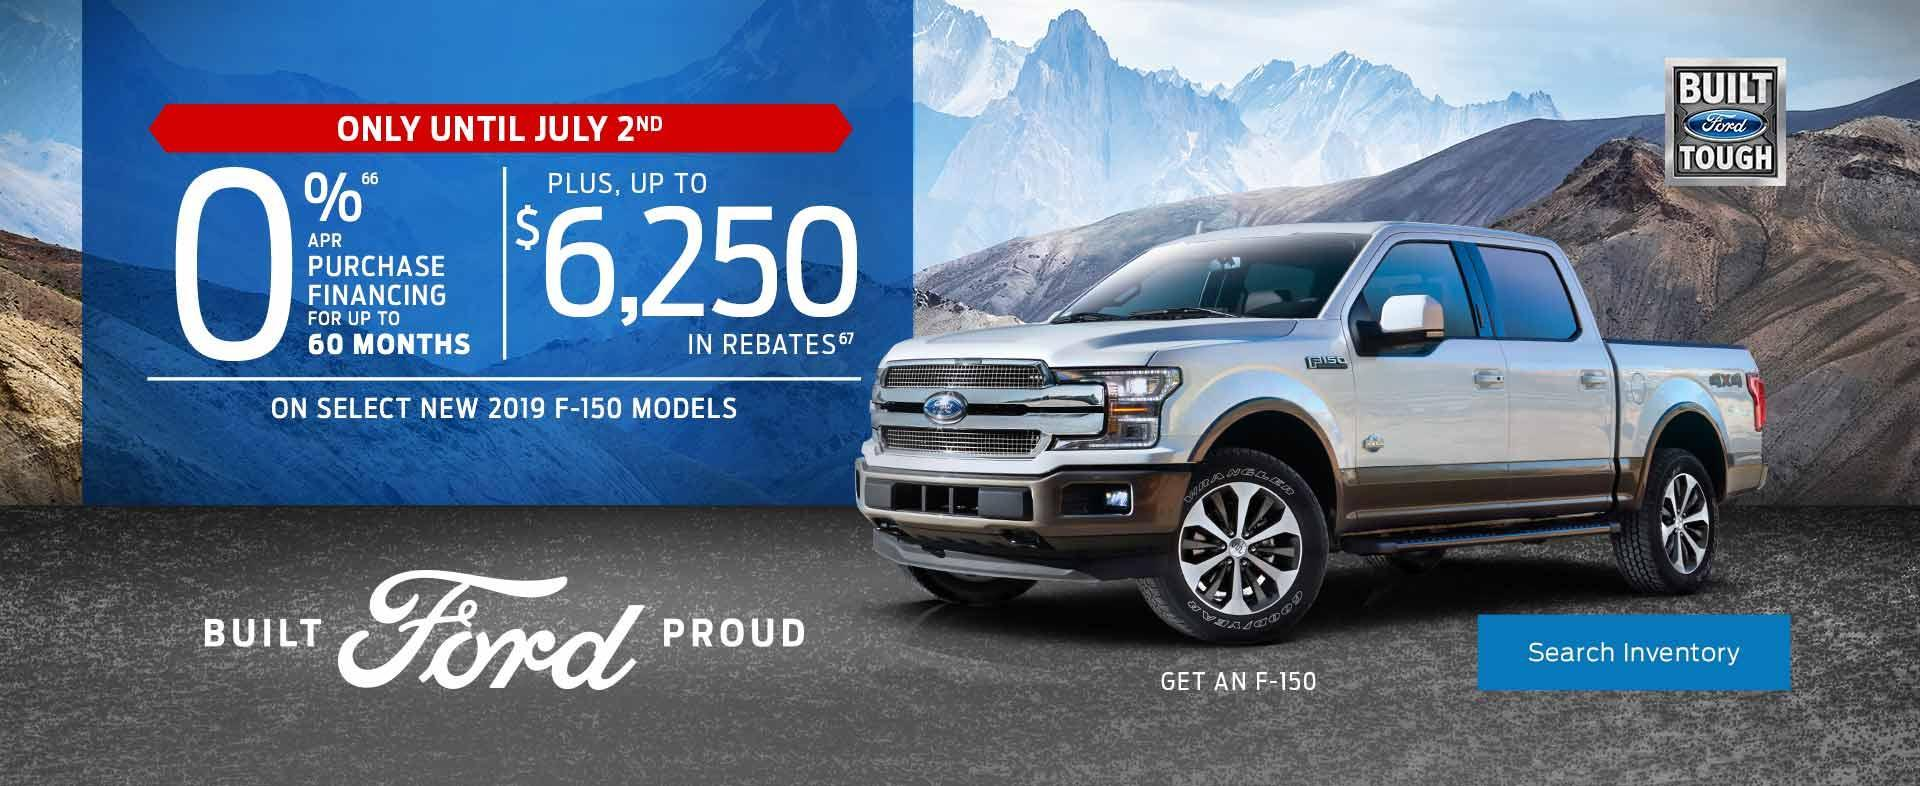 Build Price And Configure Your New Ford Valley Ford Truck >> New Used Ford Cars Trucks Suvs Dealership In Drayton Valley Ab